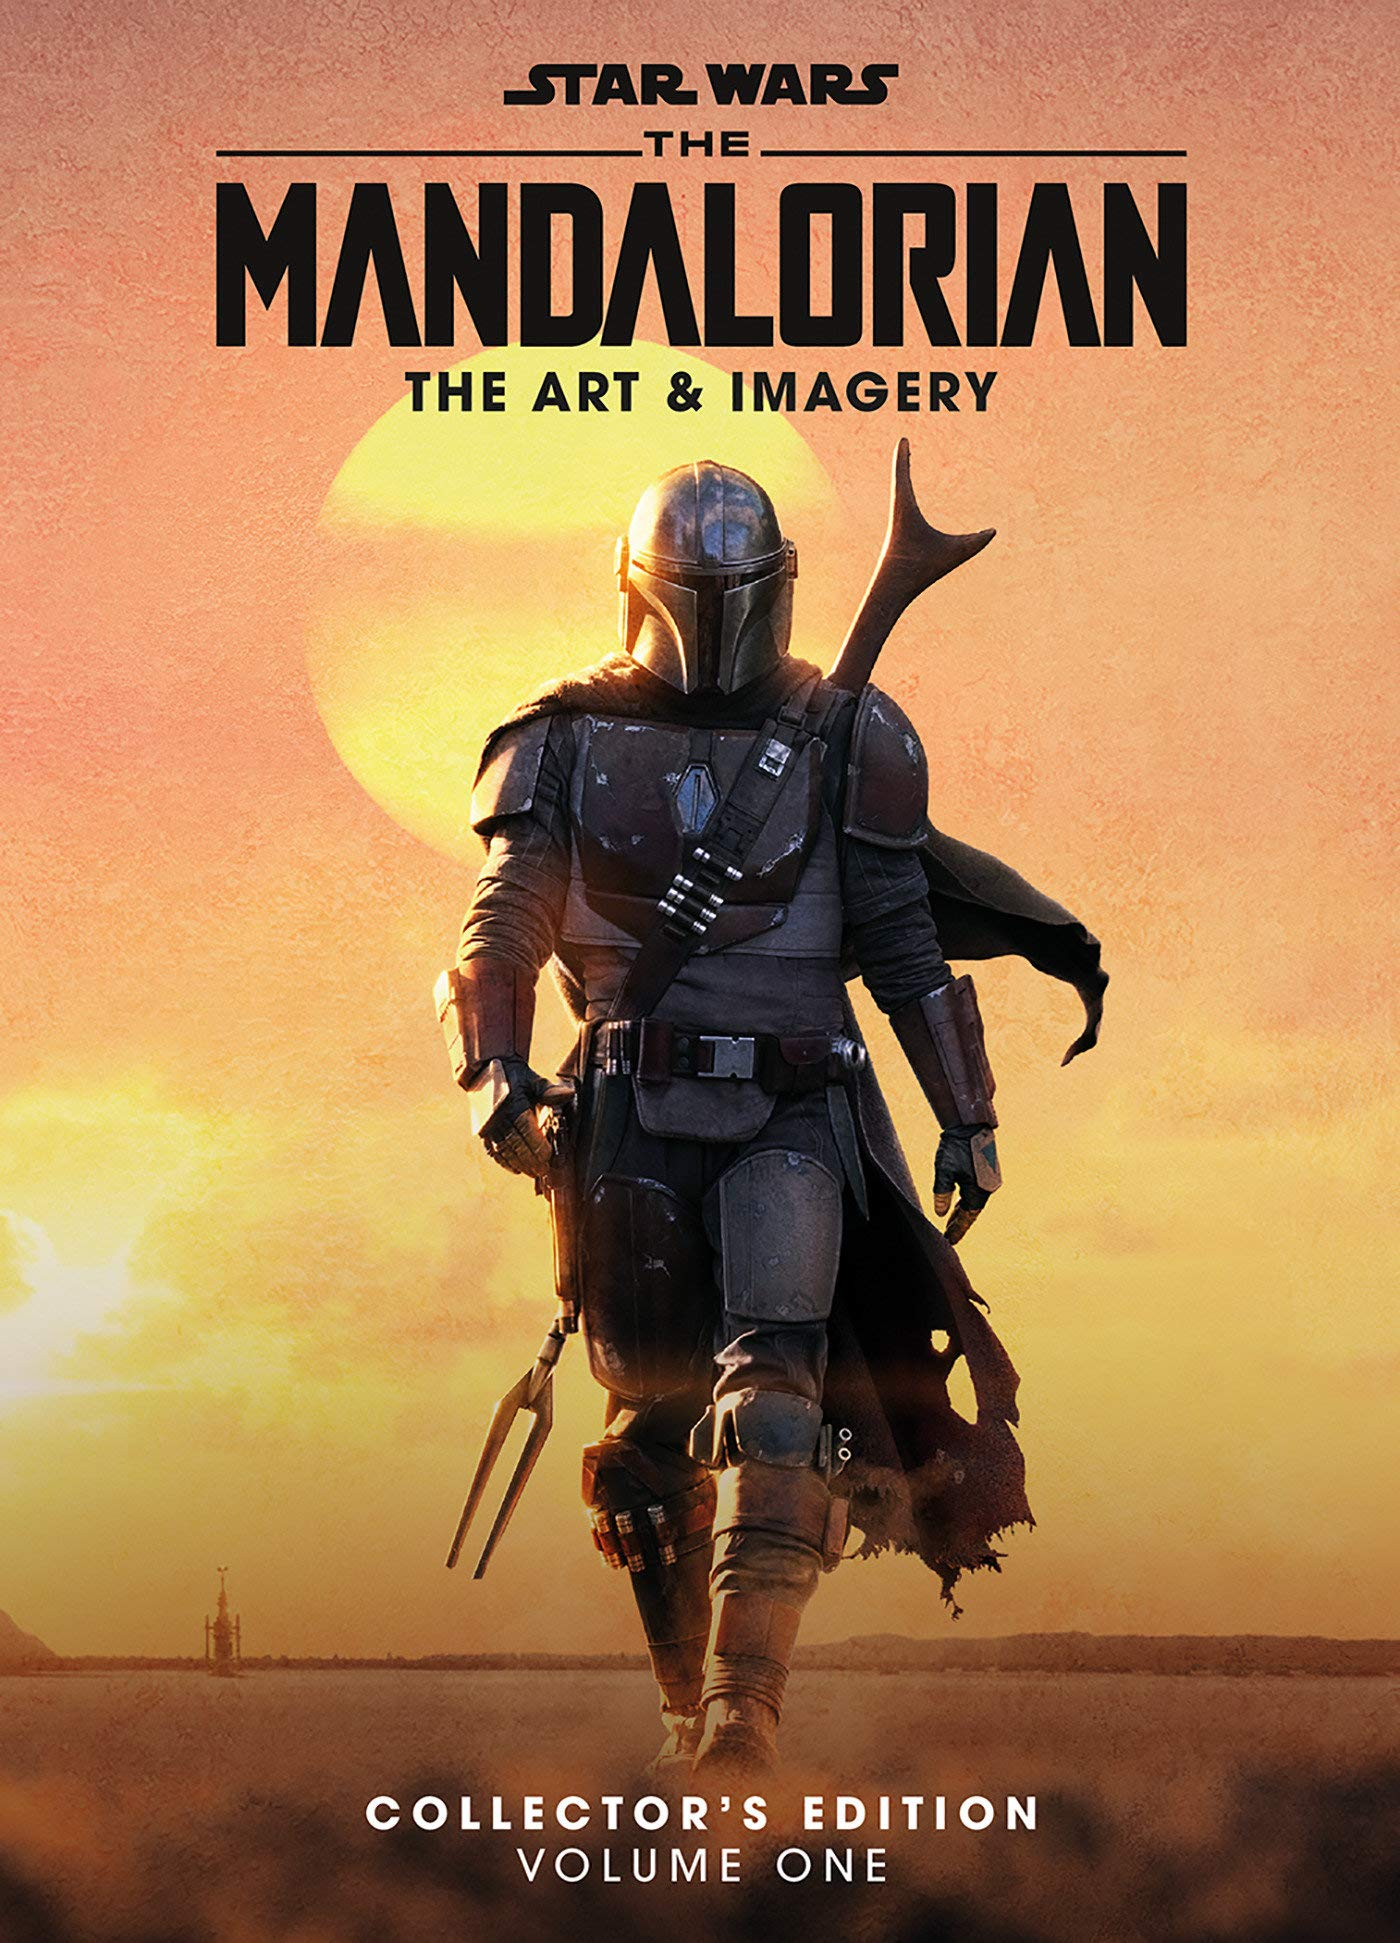 Star Wars: The Mandalorian - The Art and the Imagery Collector's Edition Book, Volume One